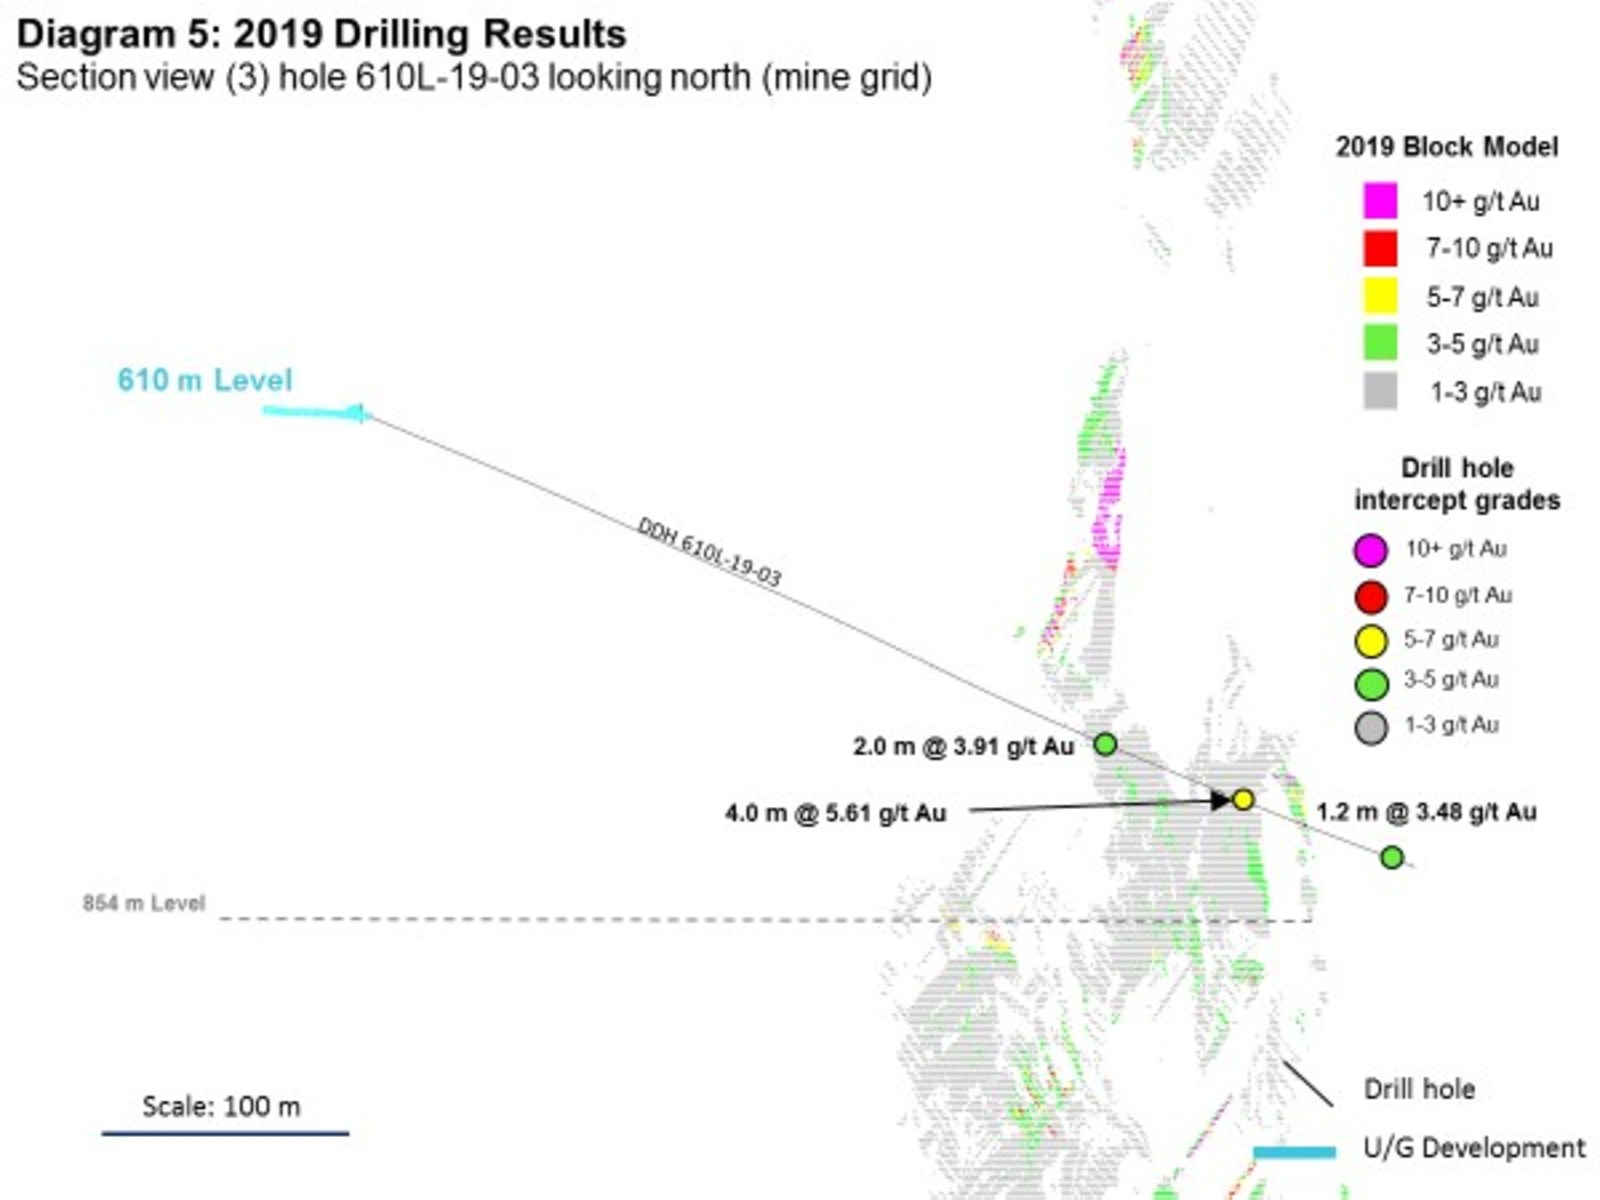 Diagram 5: 2019 Drilling Results